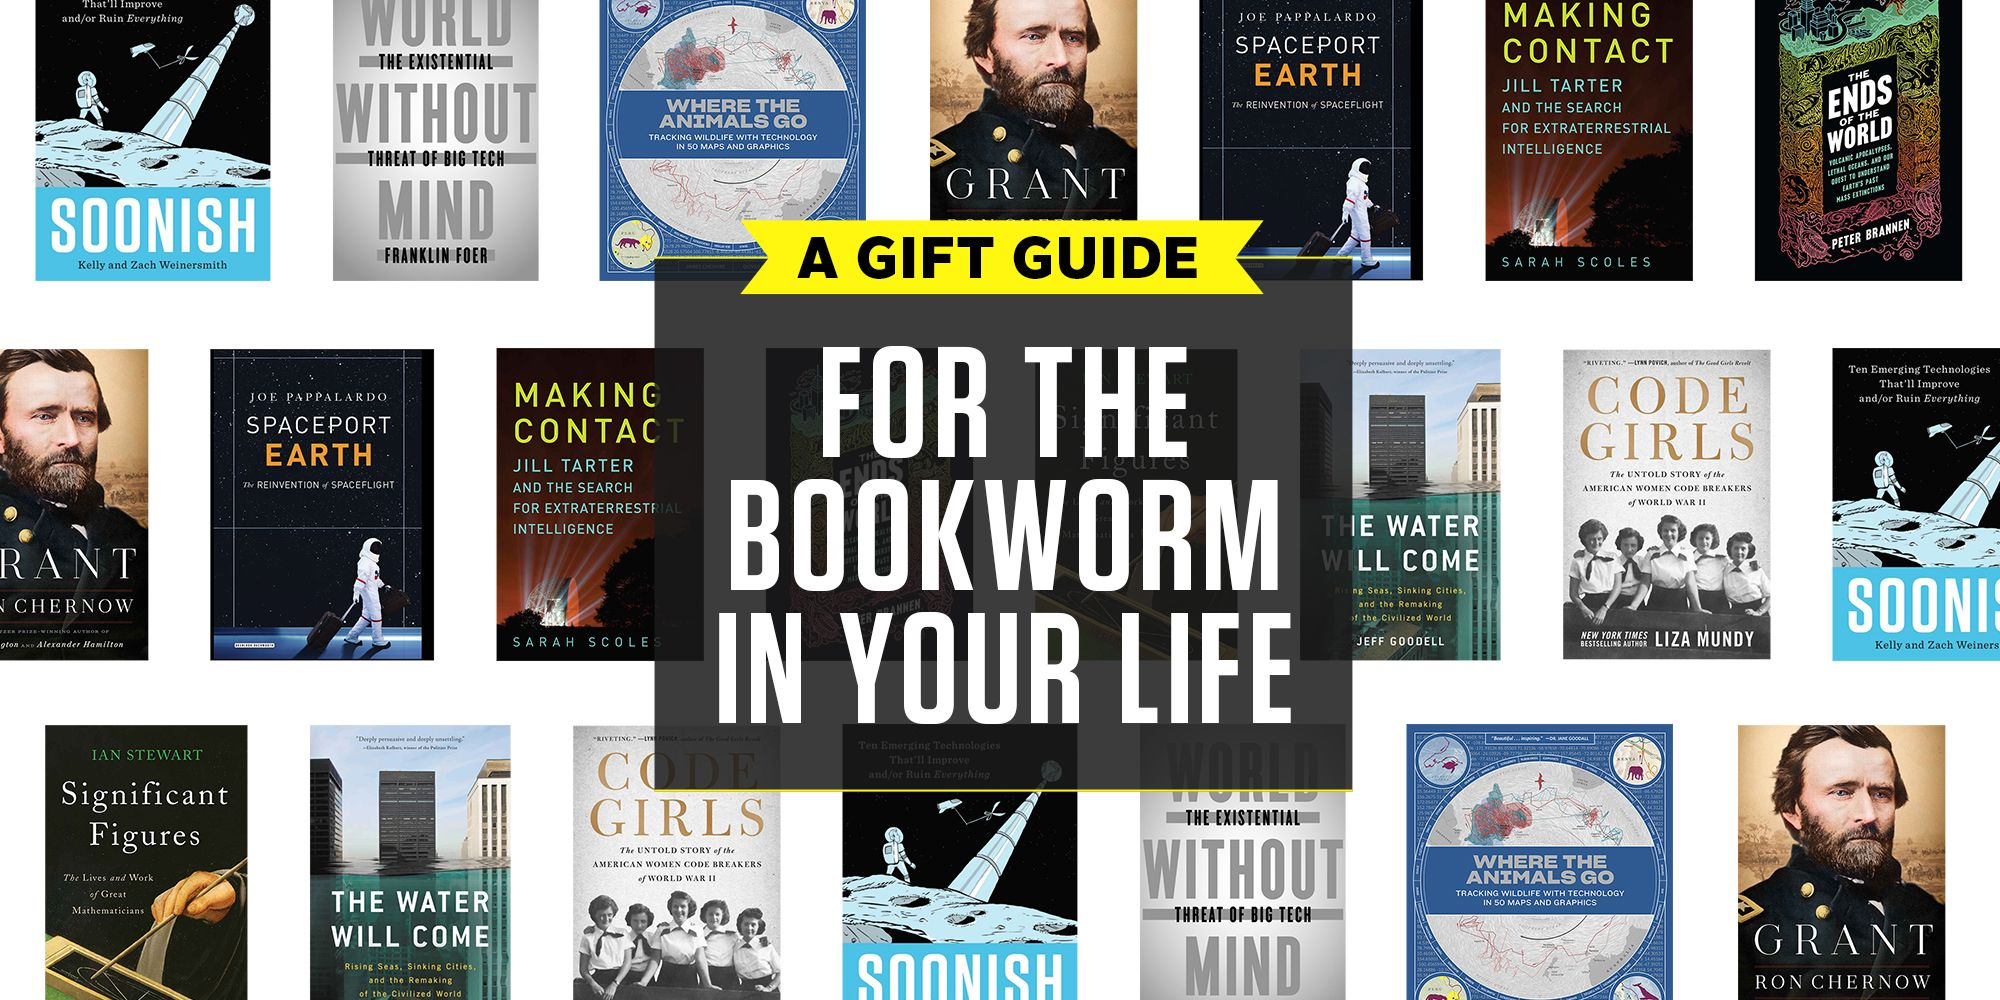 A Gift Guide for the Bookworm in Your Life